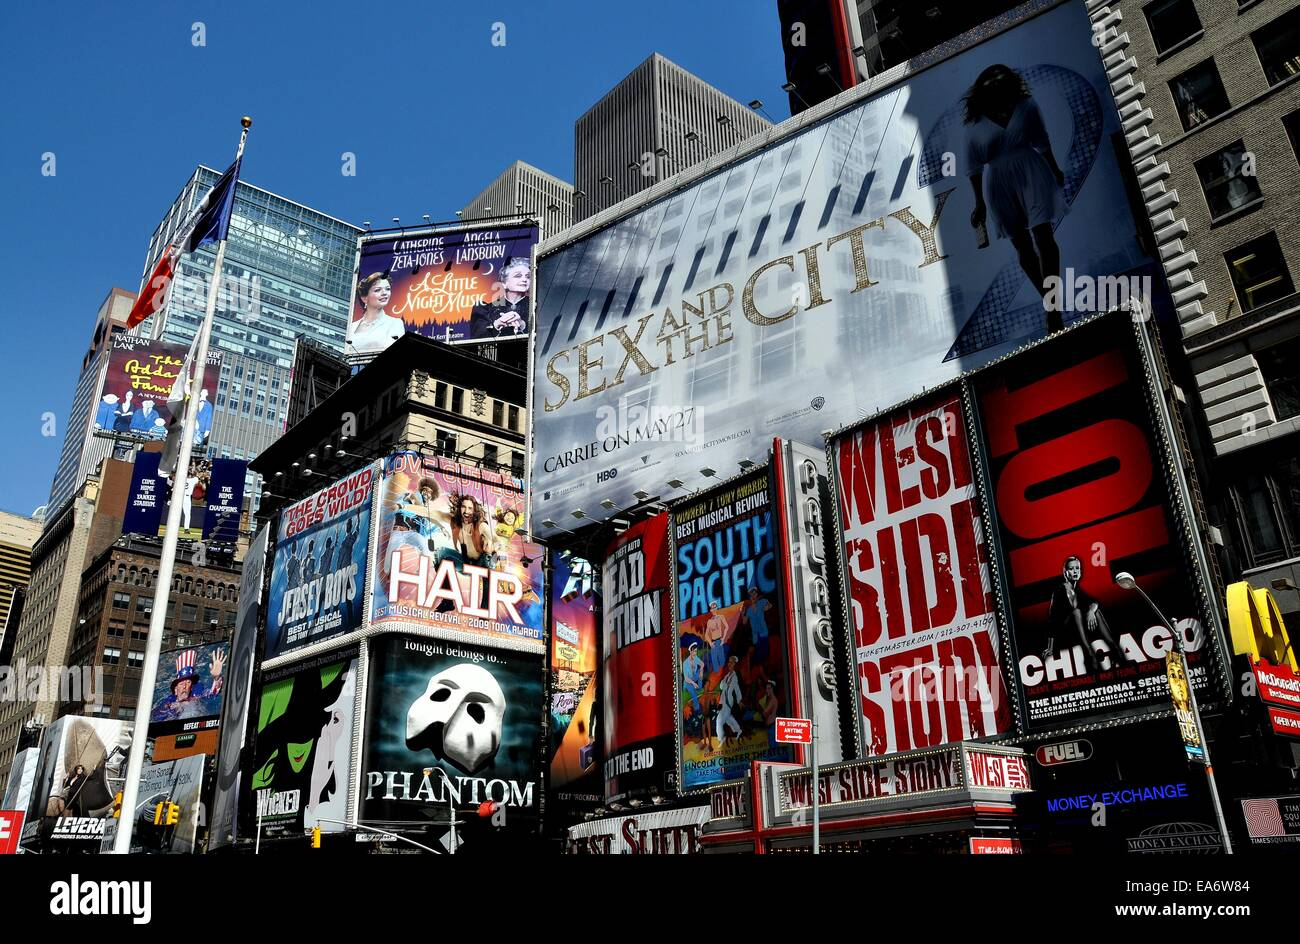 NYC:  Advertising covers the sides of buildings promoting Broadway musicals and films in Times Square at West 46th - Stock Image